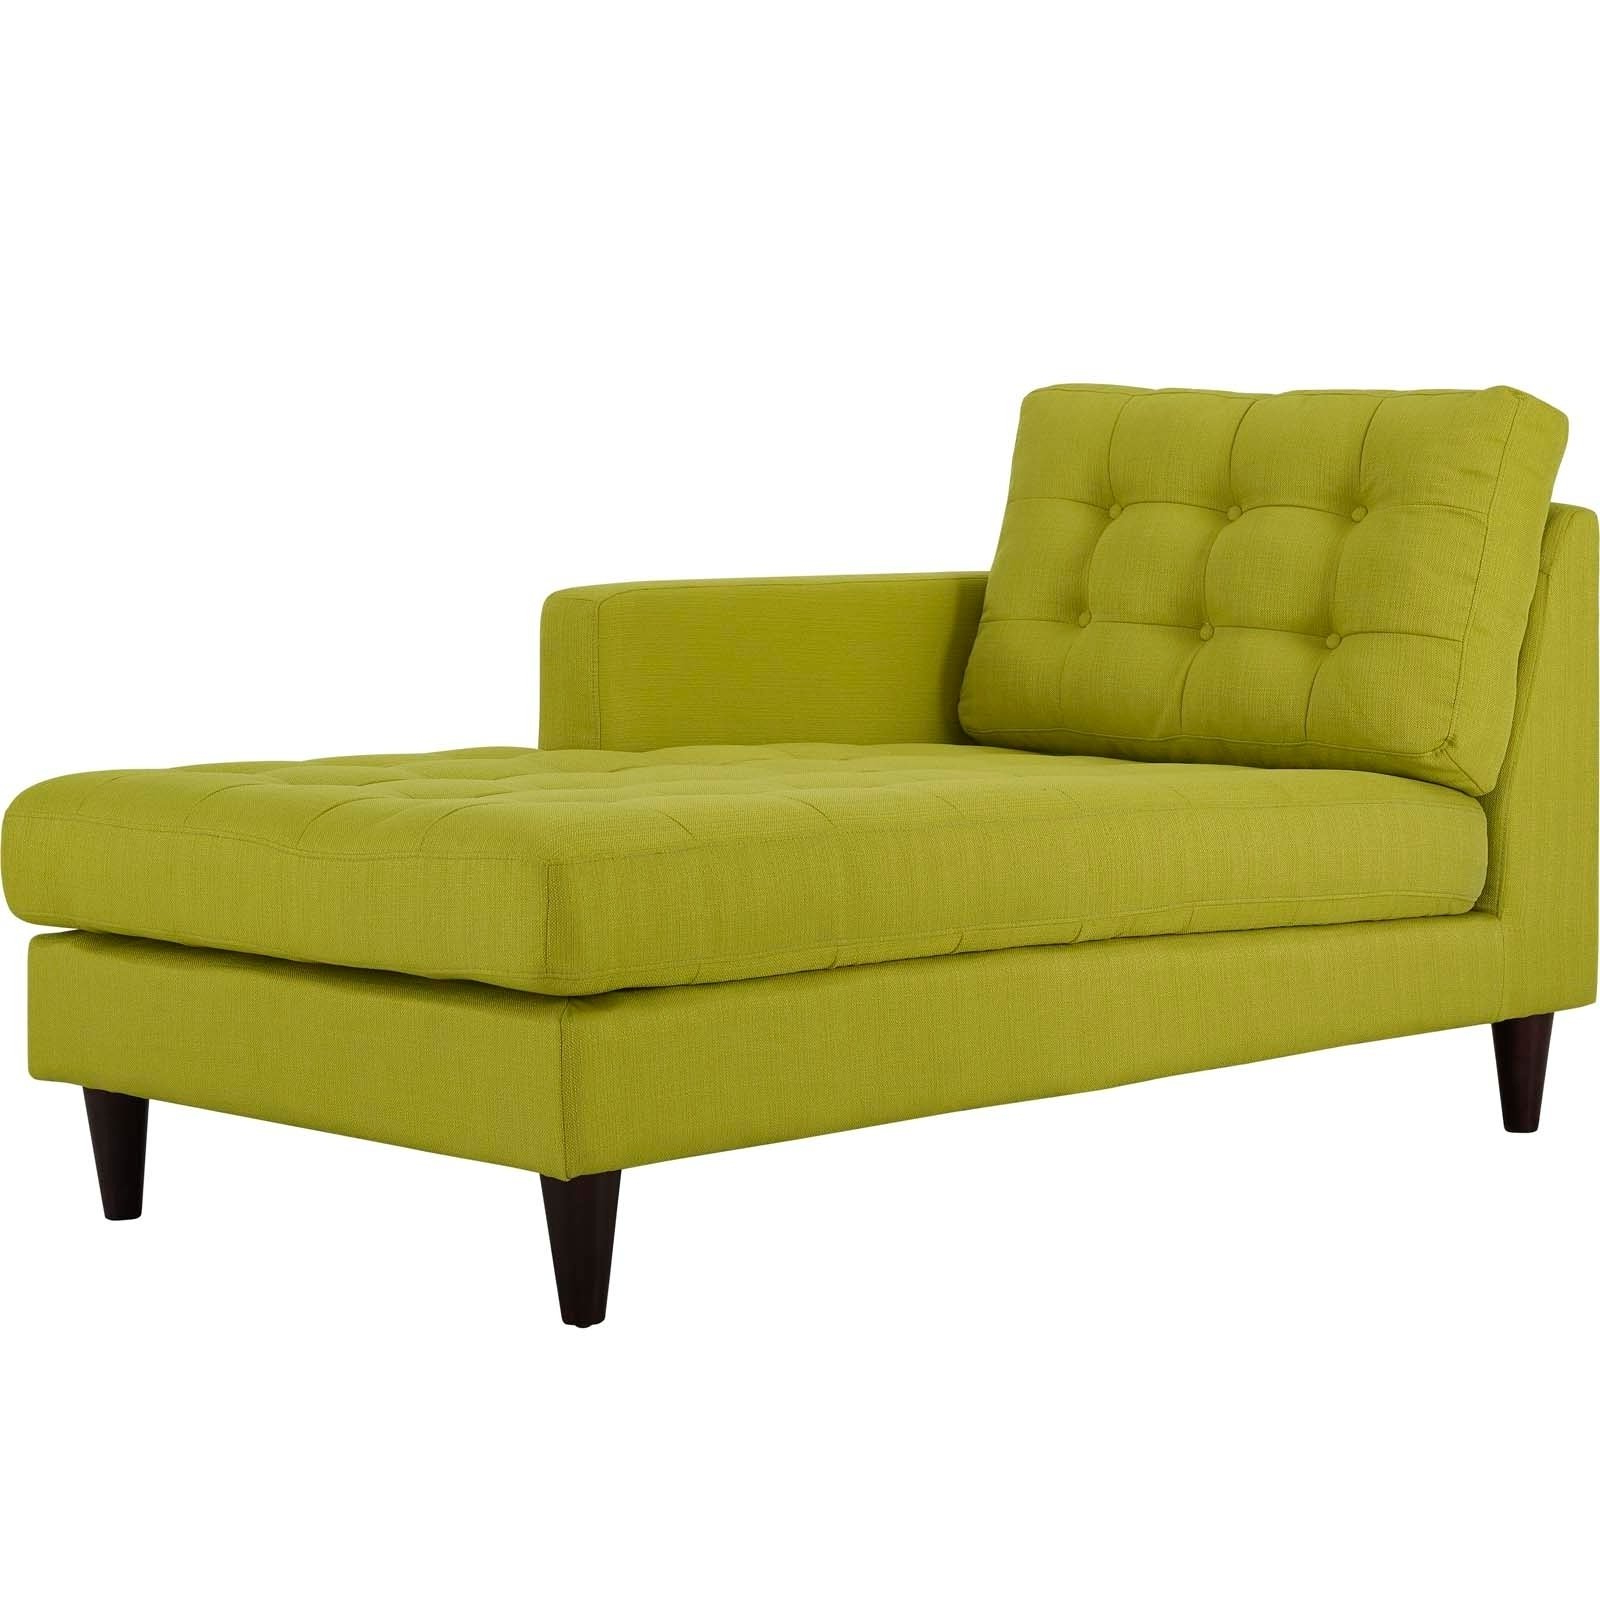 Sofá Chaise Longue 9fdy Shop Palm Canyon Eichler Right Arm Upholstered Fabric Chaise Free